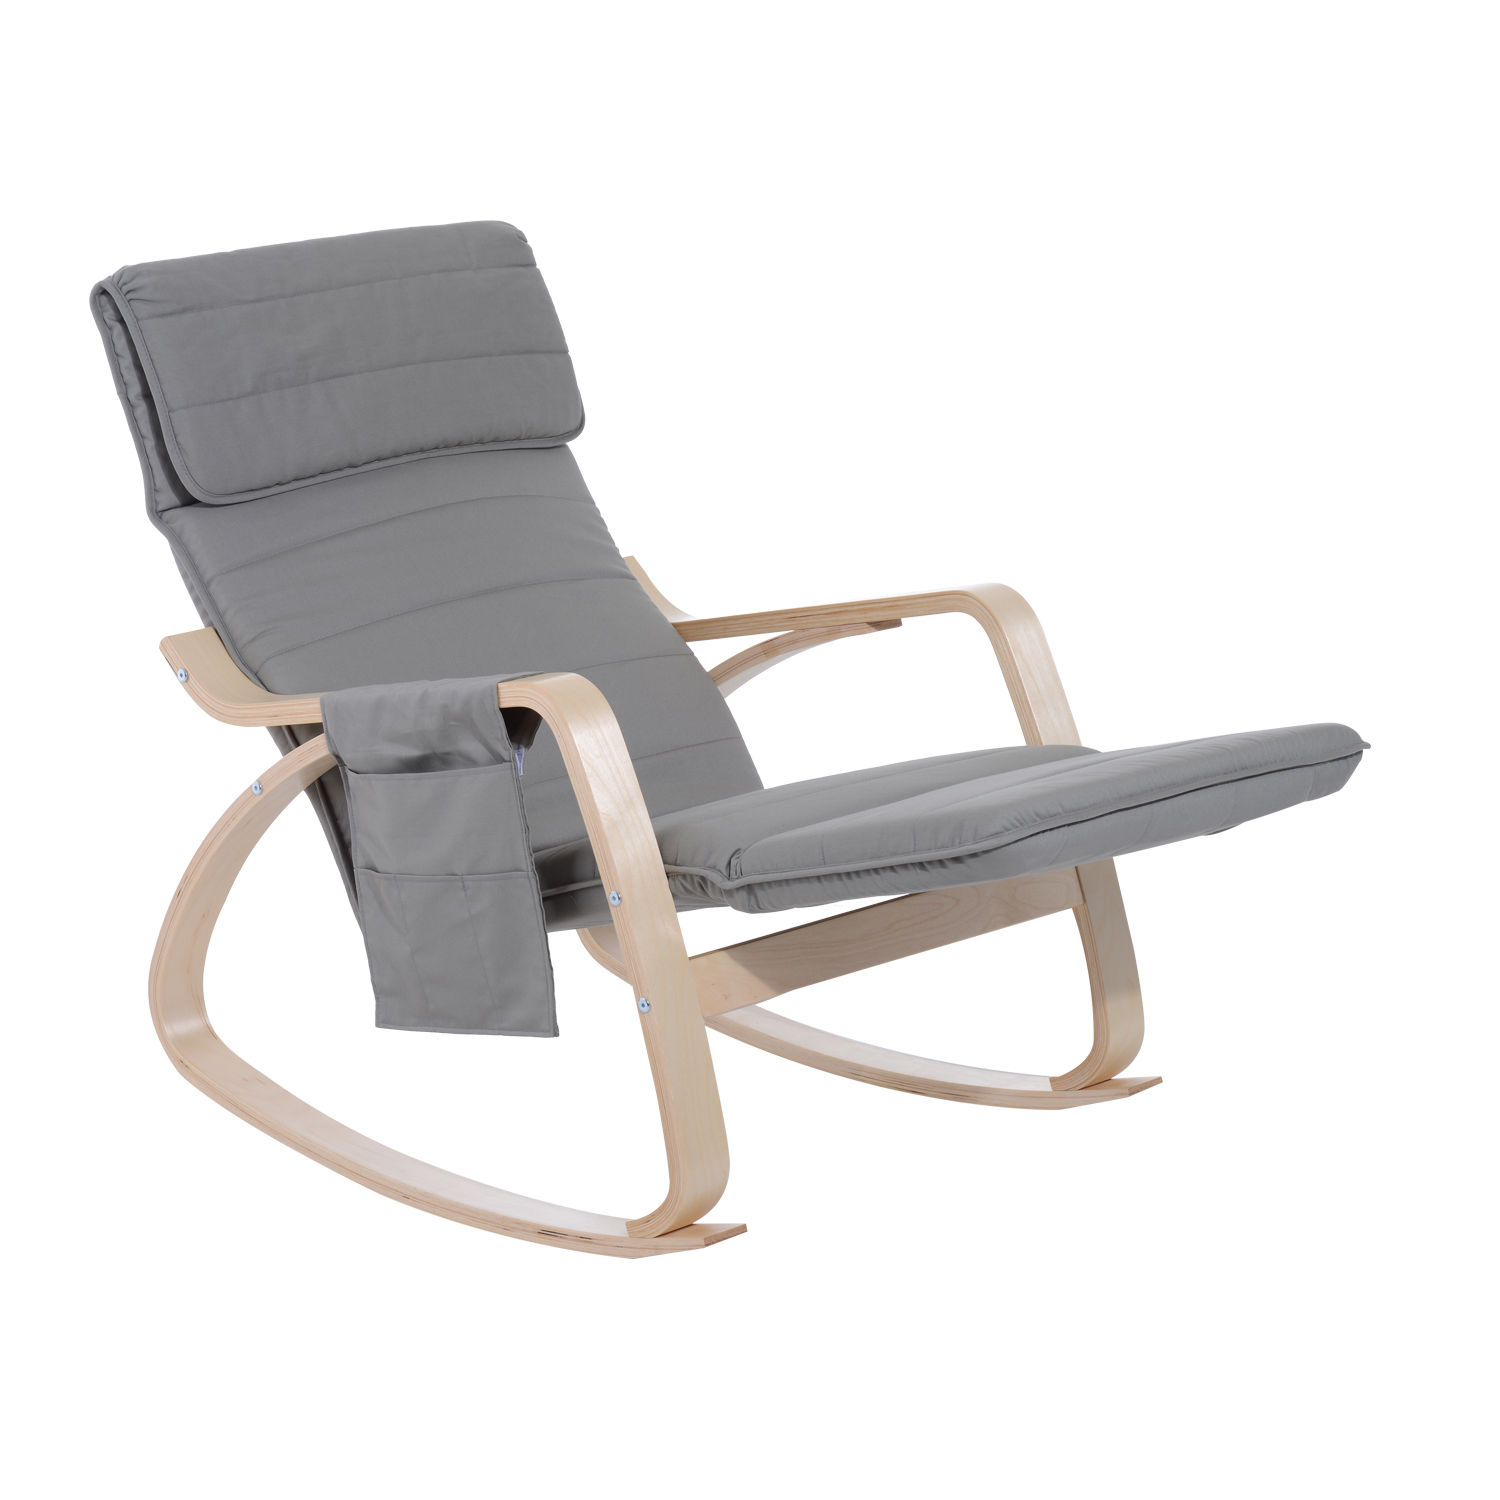 Comfortable Rocking Chair Comfortable Modern Furniture Rocking Lounge Chair Recliner